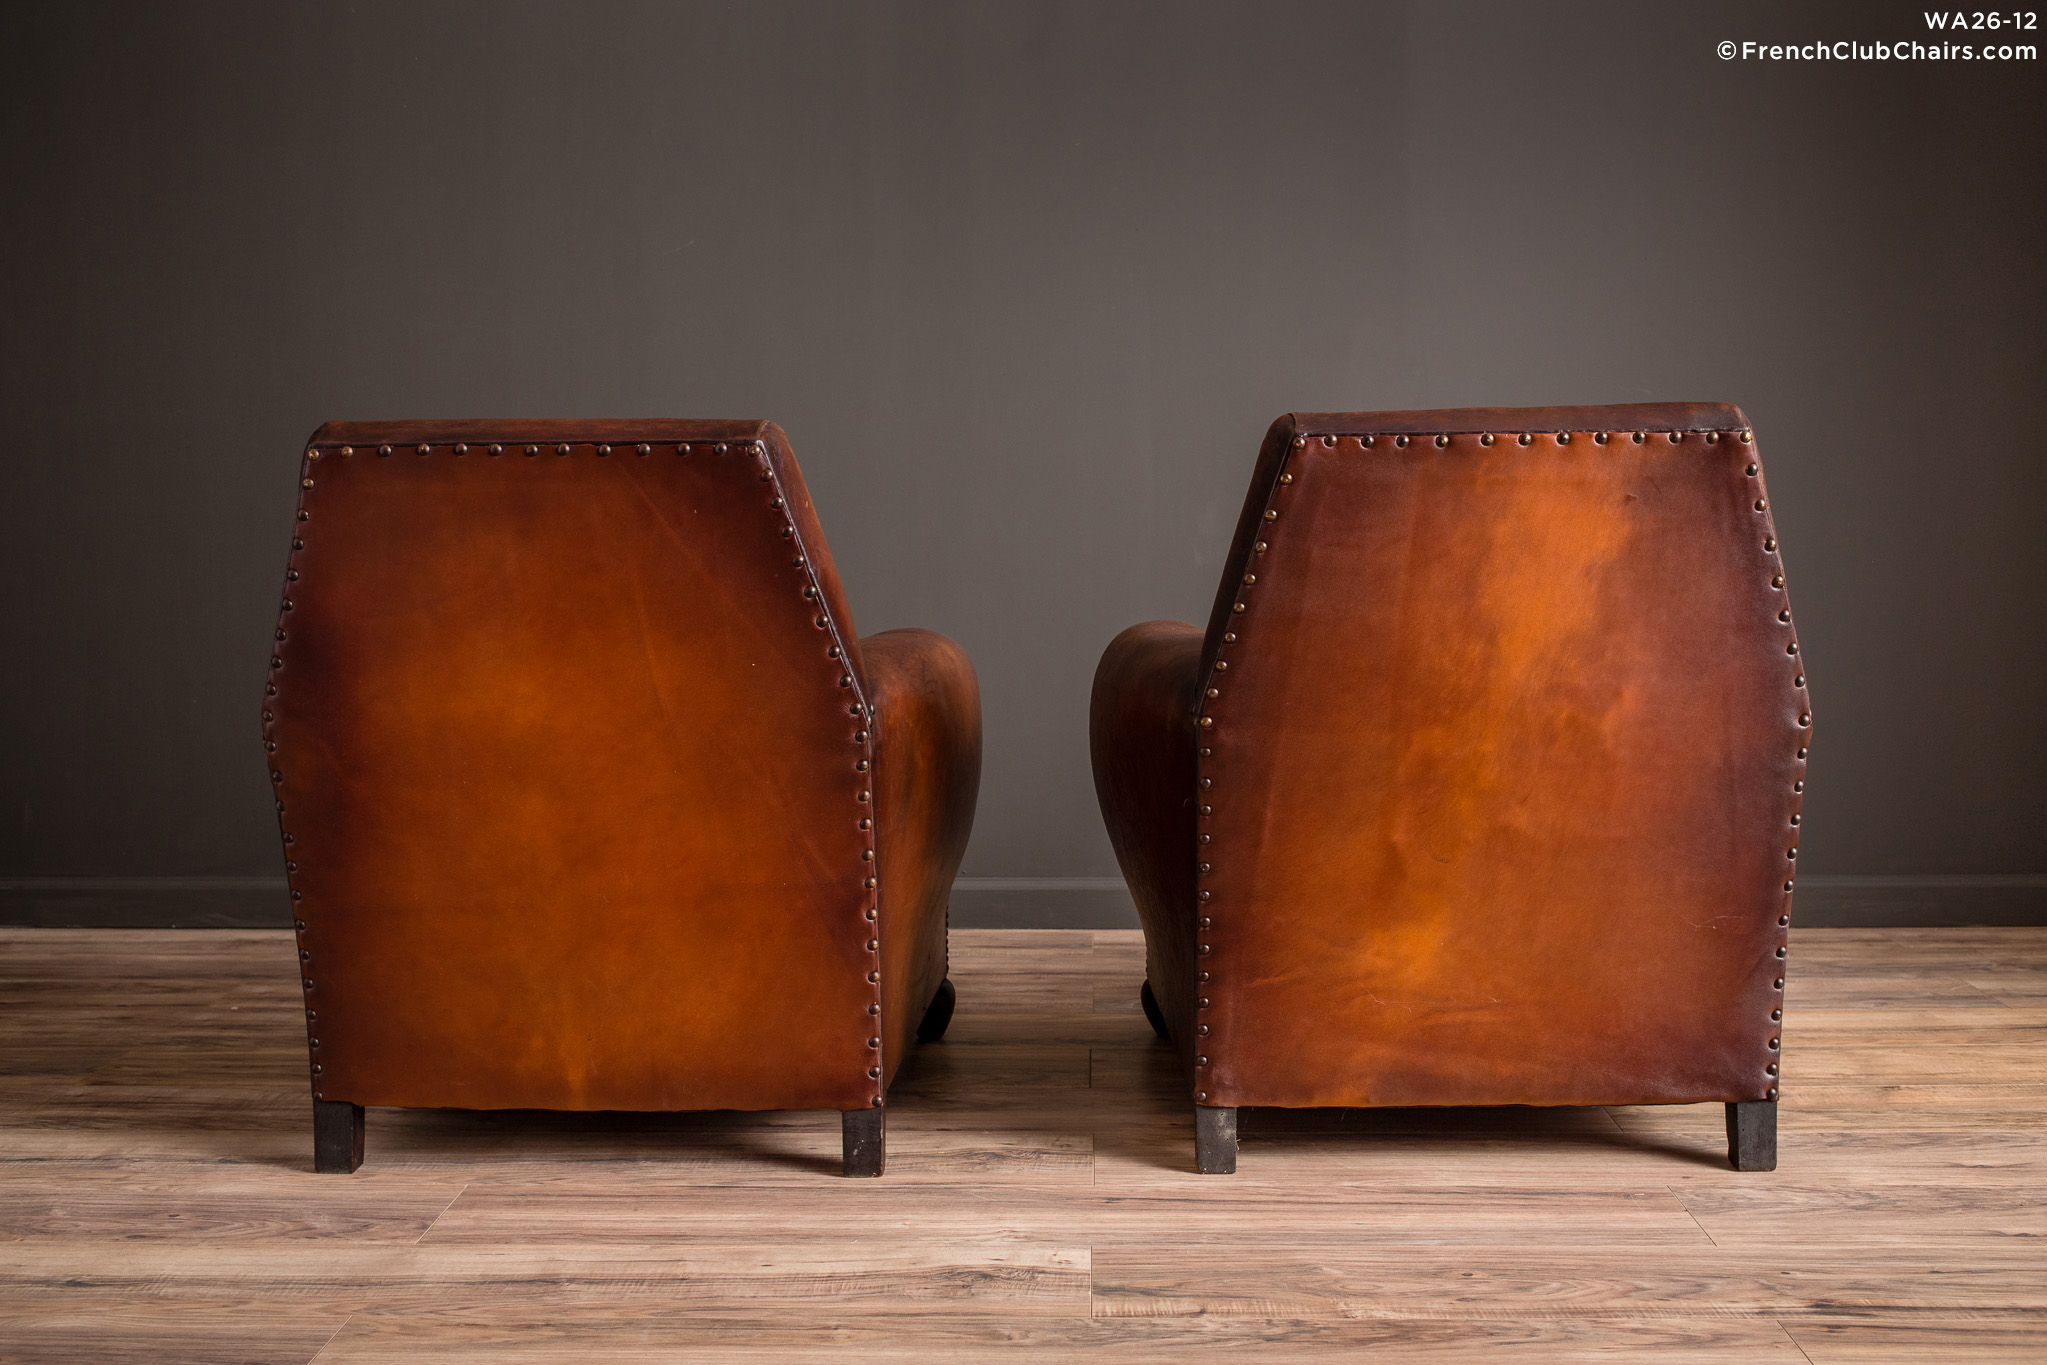 WA_26-12_Monaco_Lounge_Pair_R_2BK-v01-williams-antiks-leather-french-club-chair-wa_fcccom